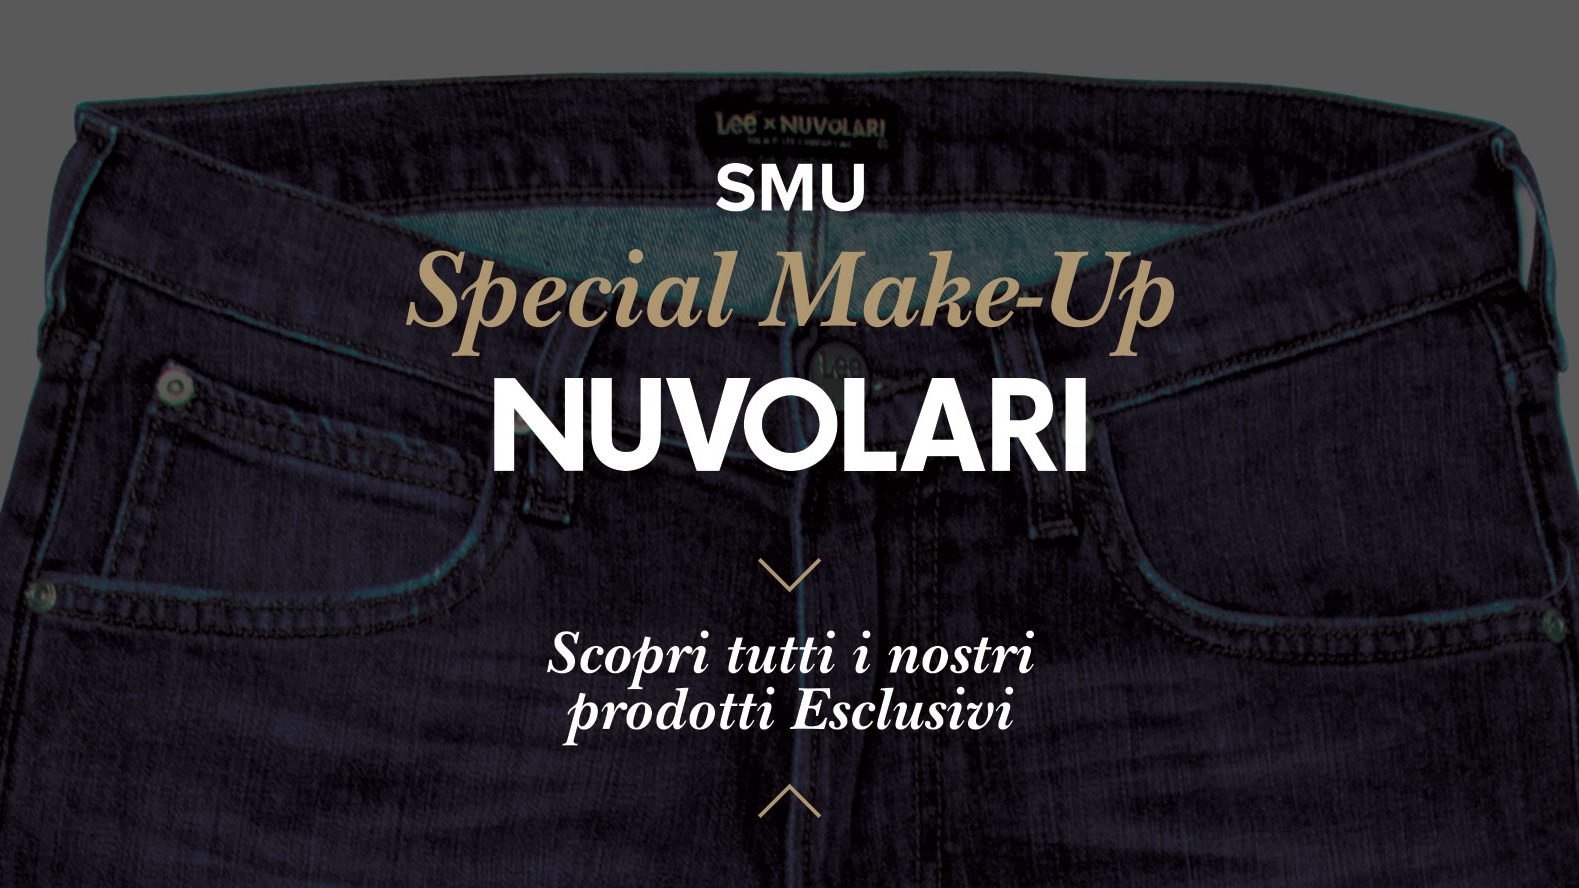 Special make-up nuvolari limited_edition